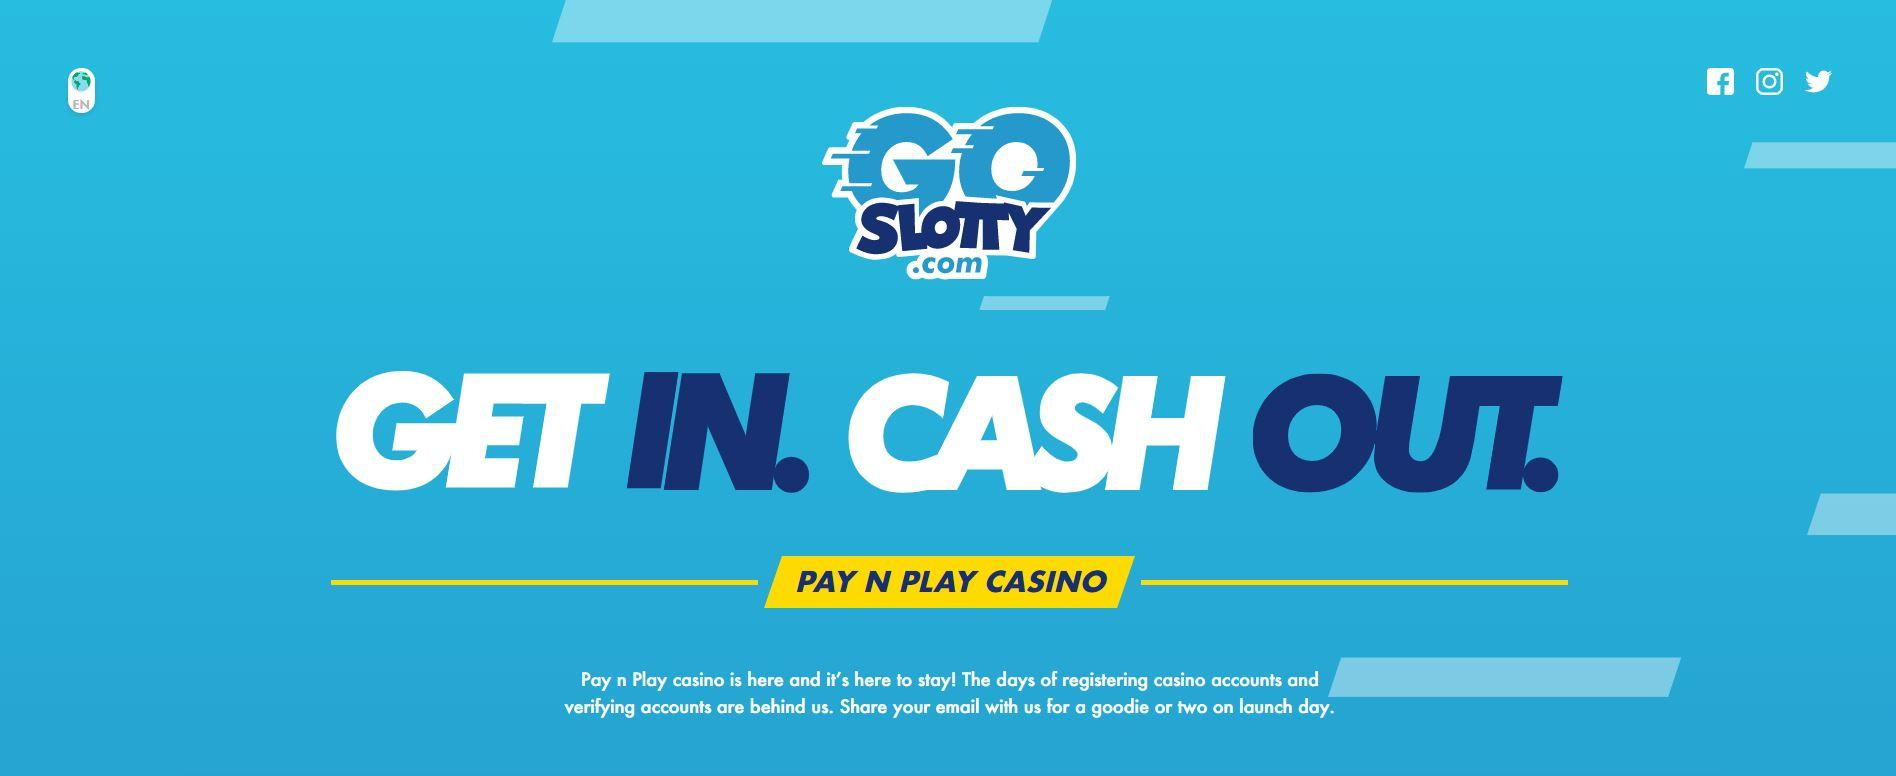 go slotty casino